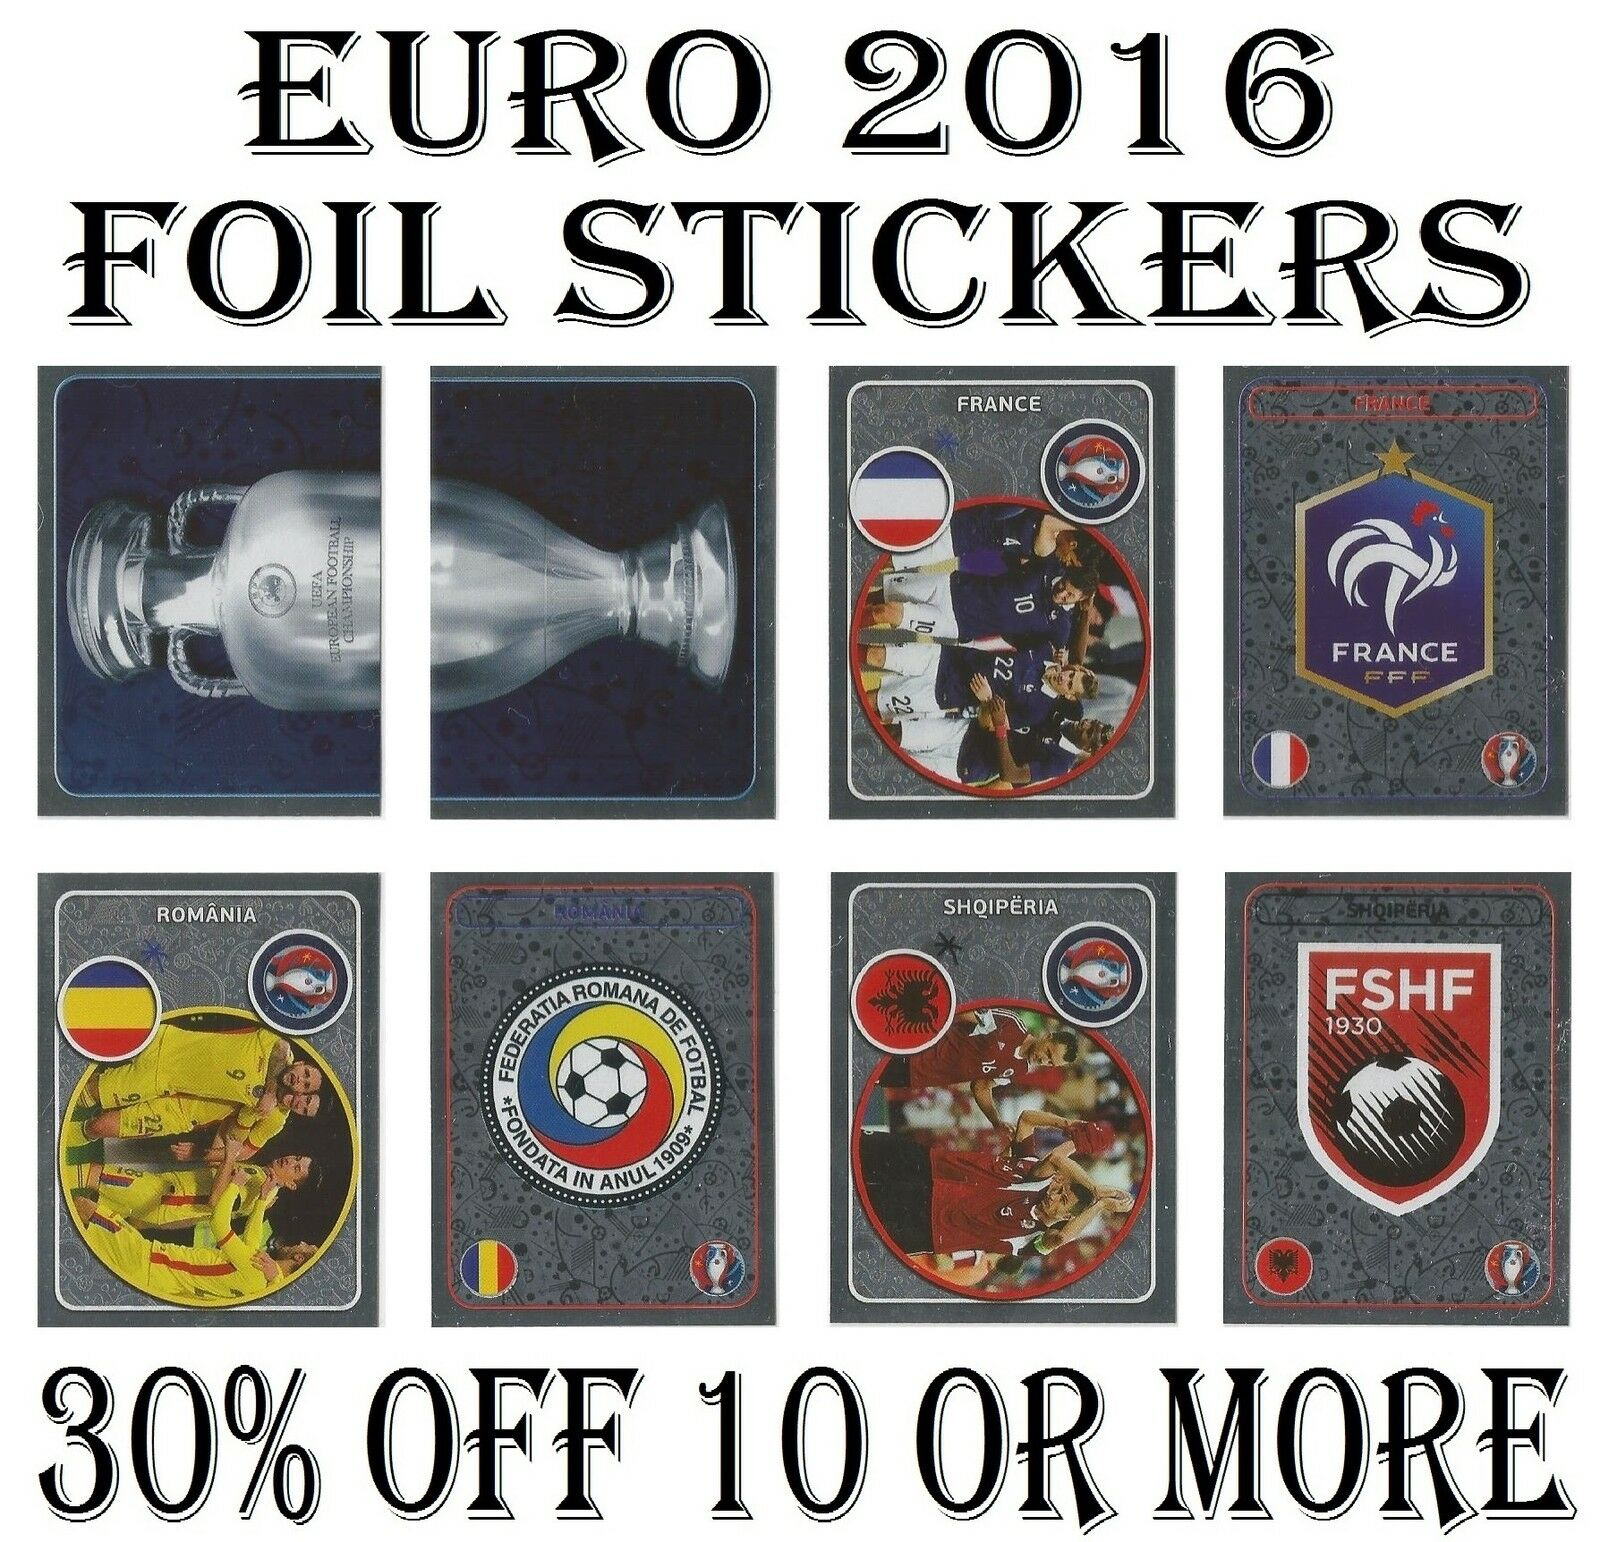 Panini Euro 2016 Foil Stickers  Special  Shiny  Badges. Wewill Signs. Parking Signs. Lung Symptom Signs. Bottled Water Signs Of Stroke. Frame Text Lettering. Car Brand Decals. Heat Stress Signs Of Stroke. Supervillain Logo